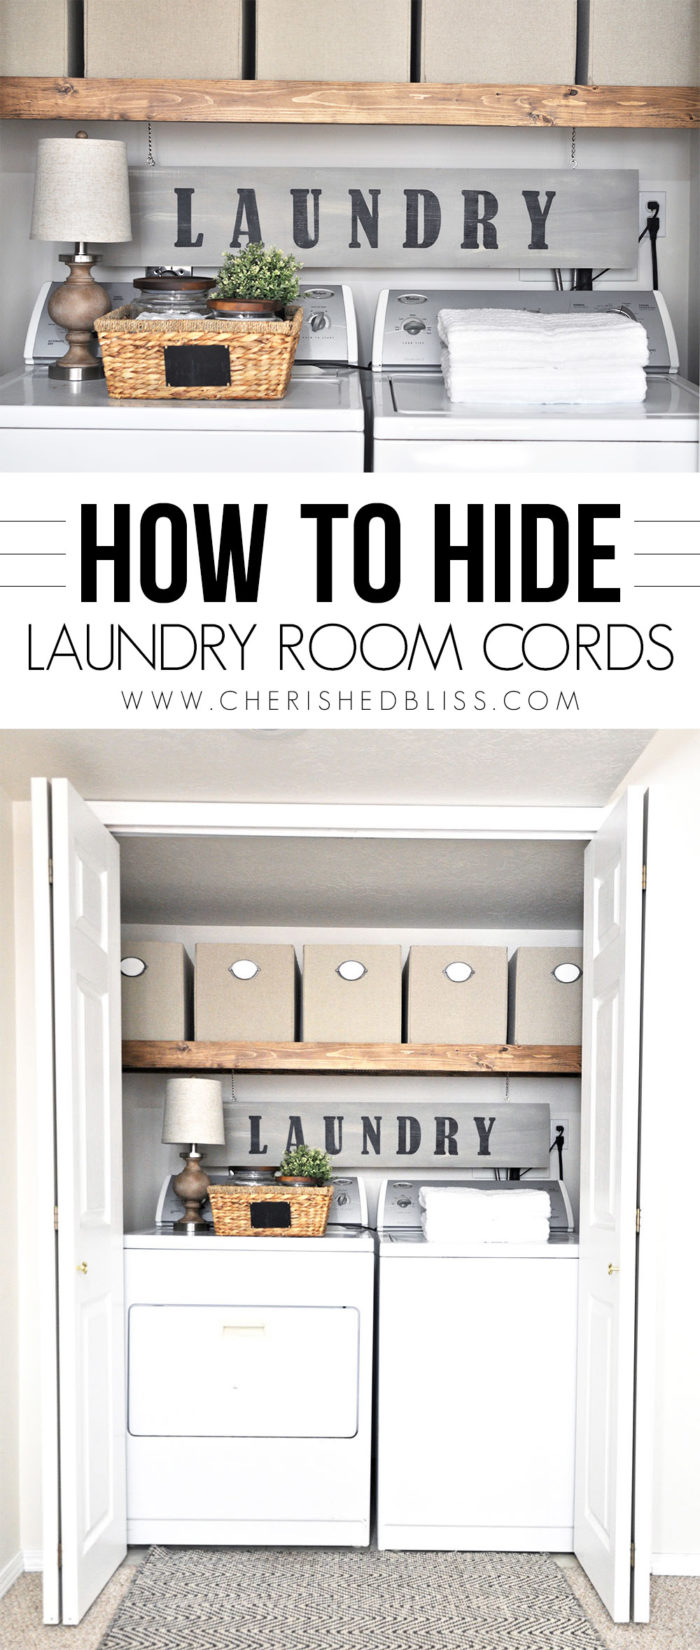 Do you have ugly cords cramping your style? With this easy tutorial learn how to hide cords while leaving them accessible all while keeping your style!